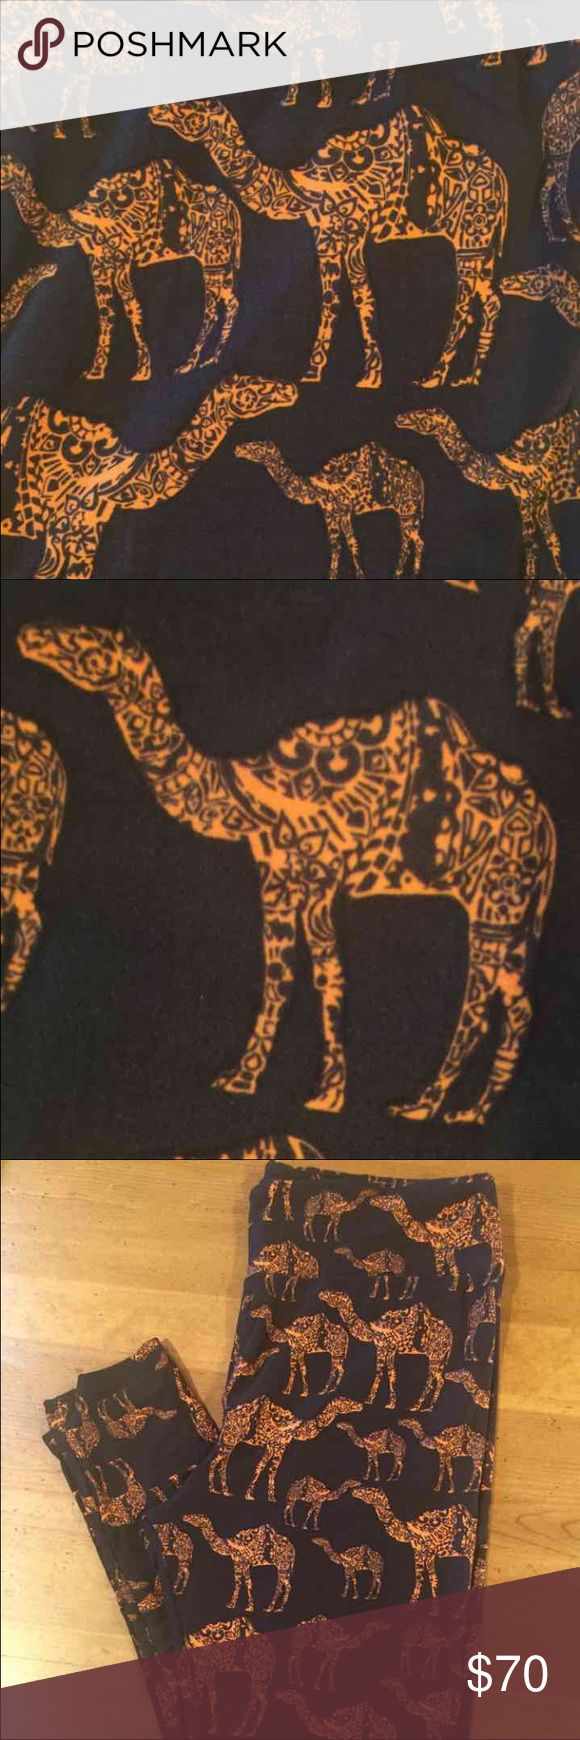 LuLaRoe TC CAMEL leggings Brand new in bag.  TC tall and curvy camel leggings.  Black background with mosaic camels.  Hard to find print!  *I am NOT a LuLaRoe consultant. Just an addict who loves to hunt for great prints.* LuLaRoe Pants Leggings